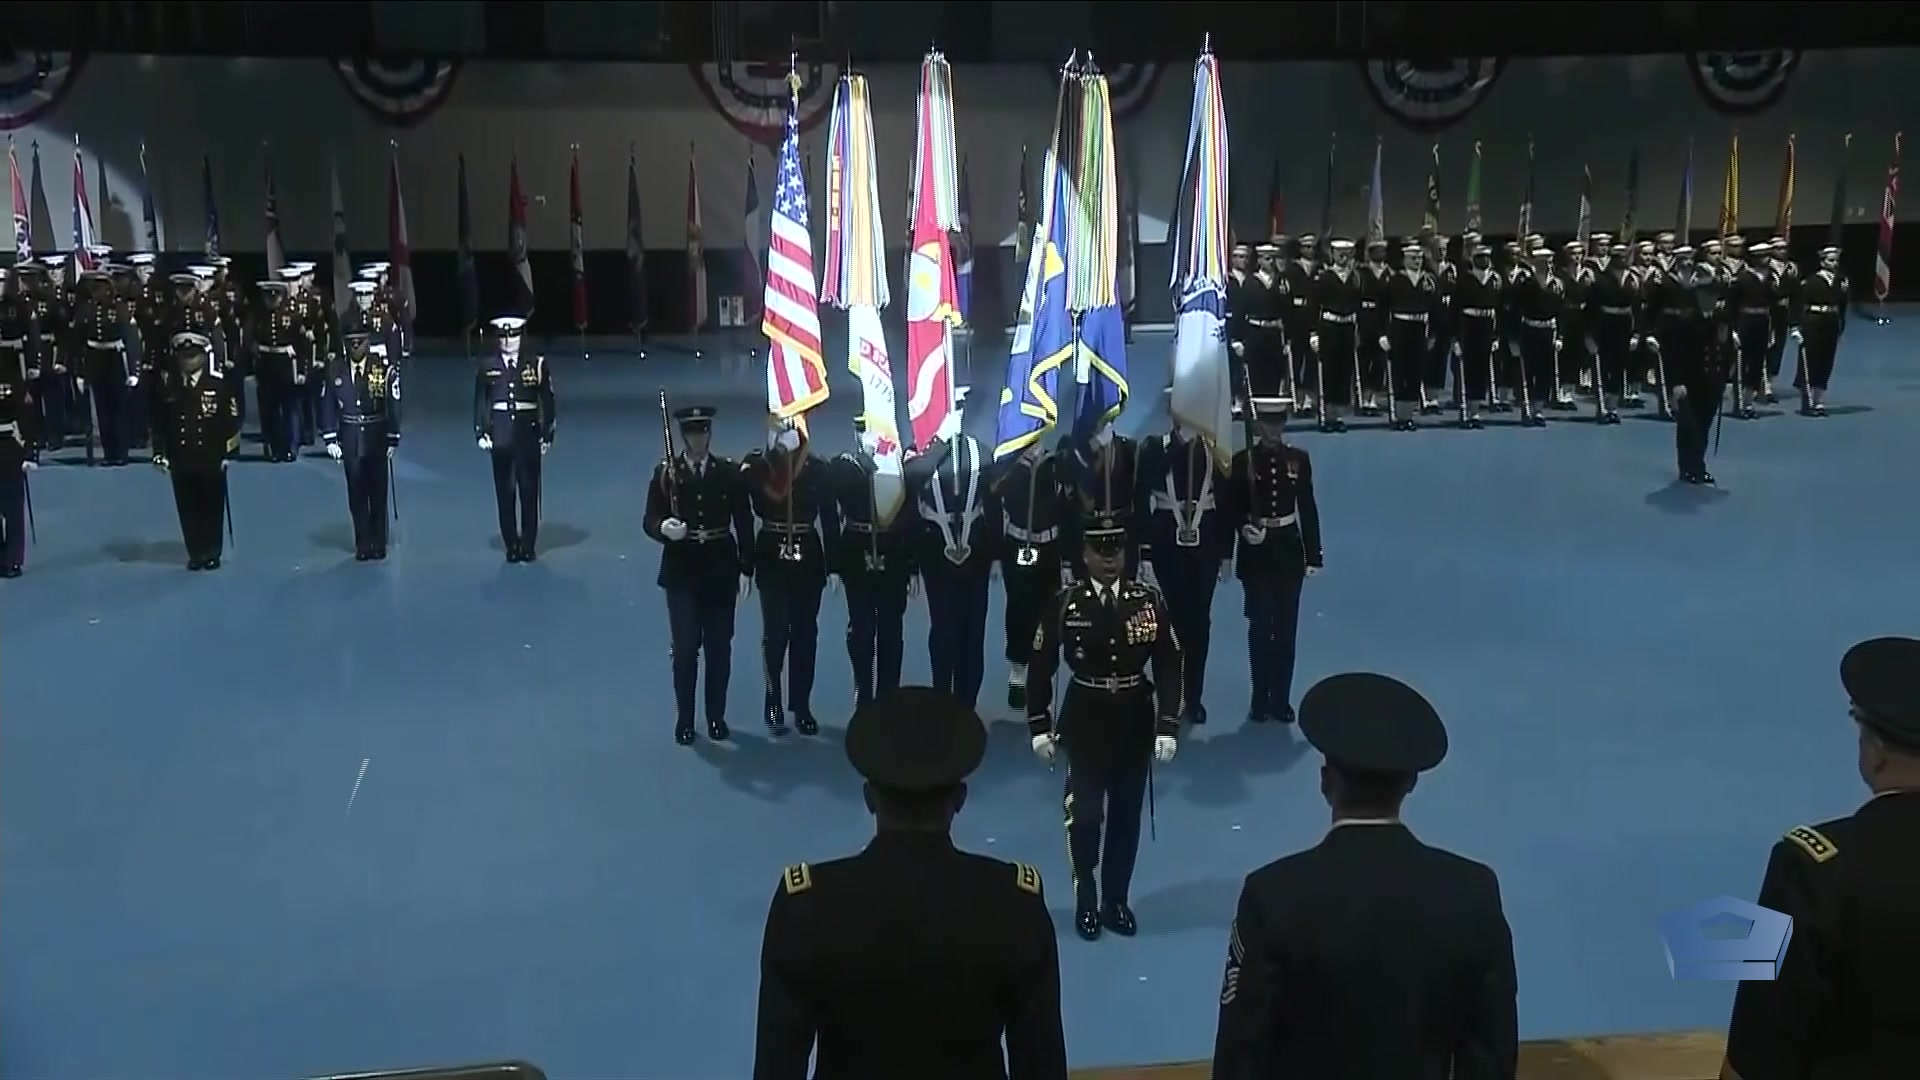 A group of service members stand in rows during a ceremony; some holding flags.